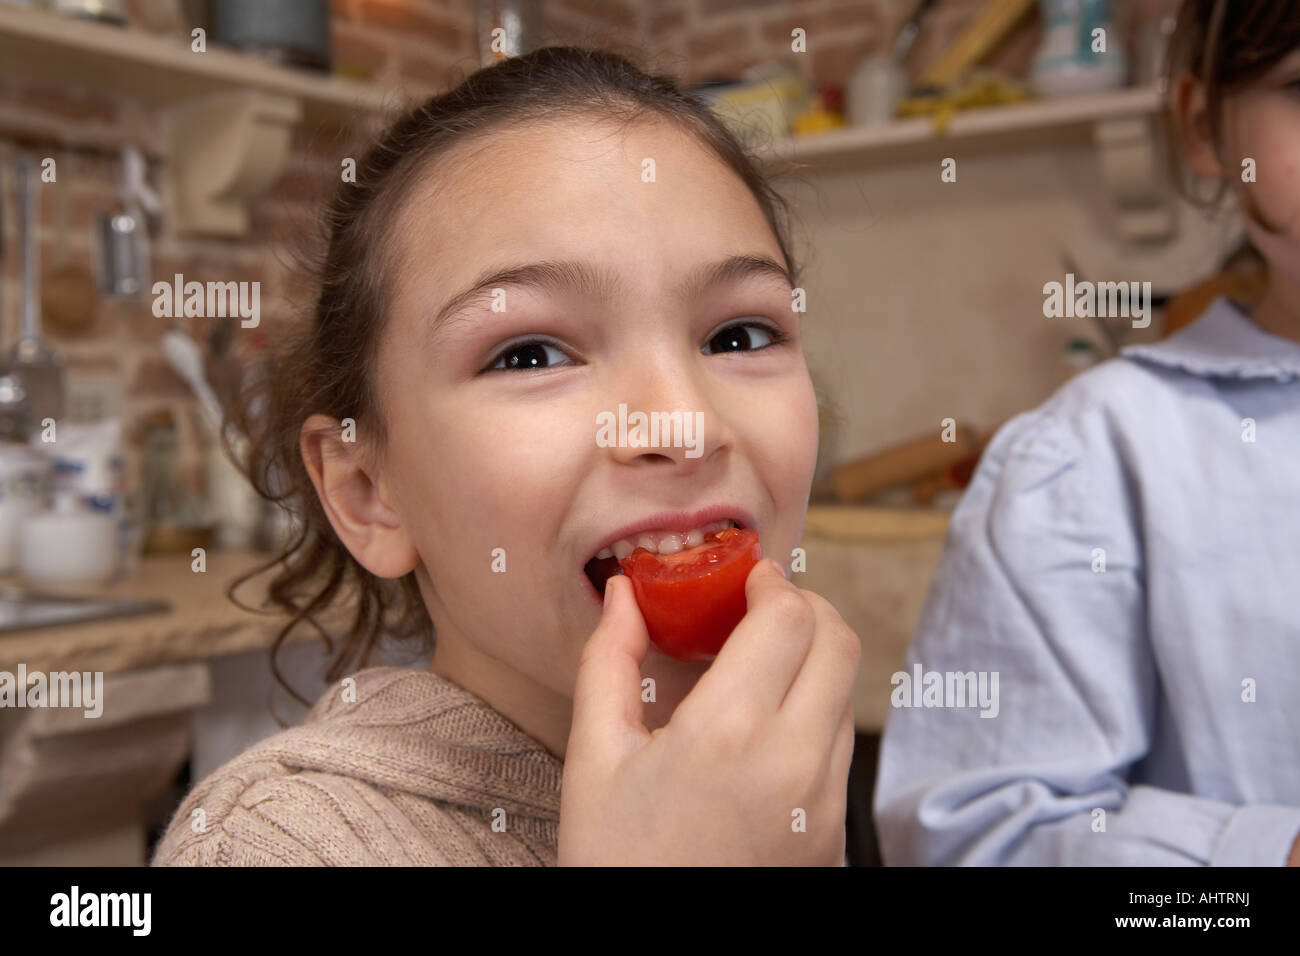 Girl (5-7) eating tomato, close-up, portrait Stock Photo